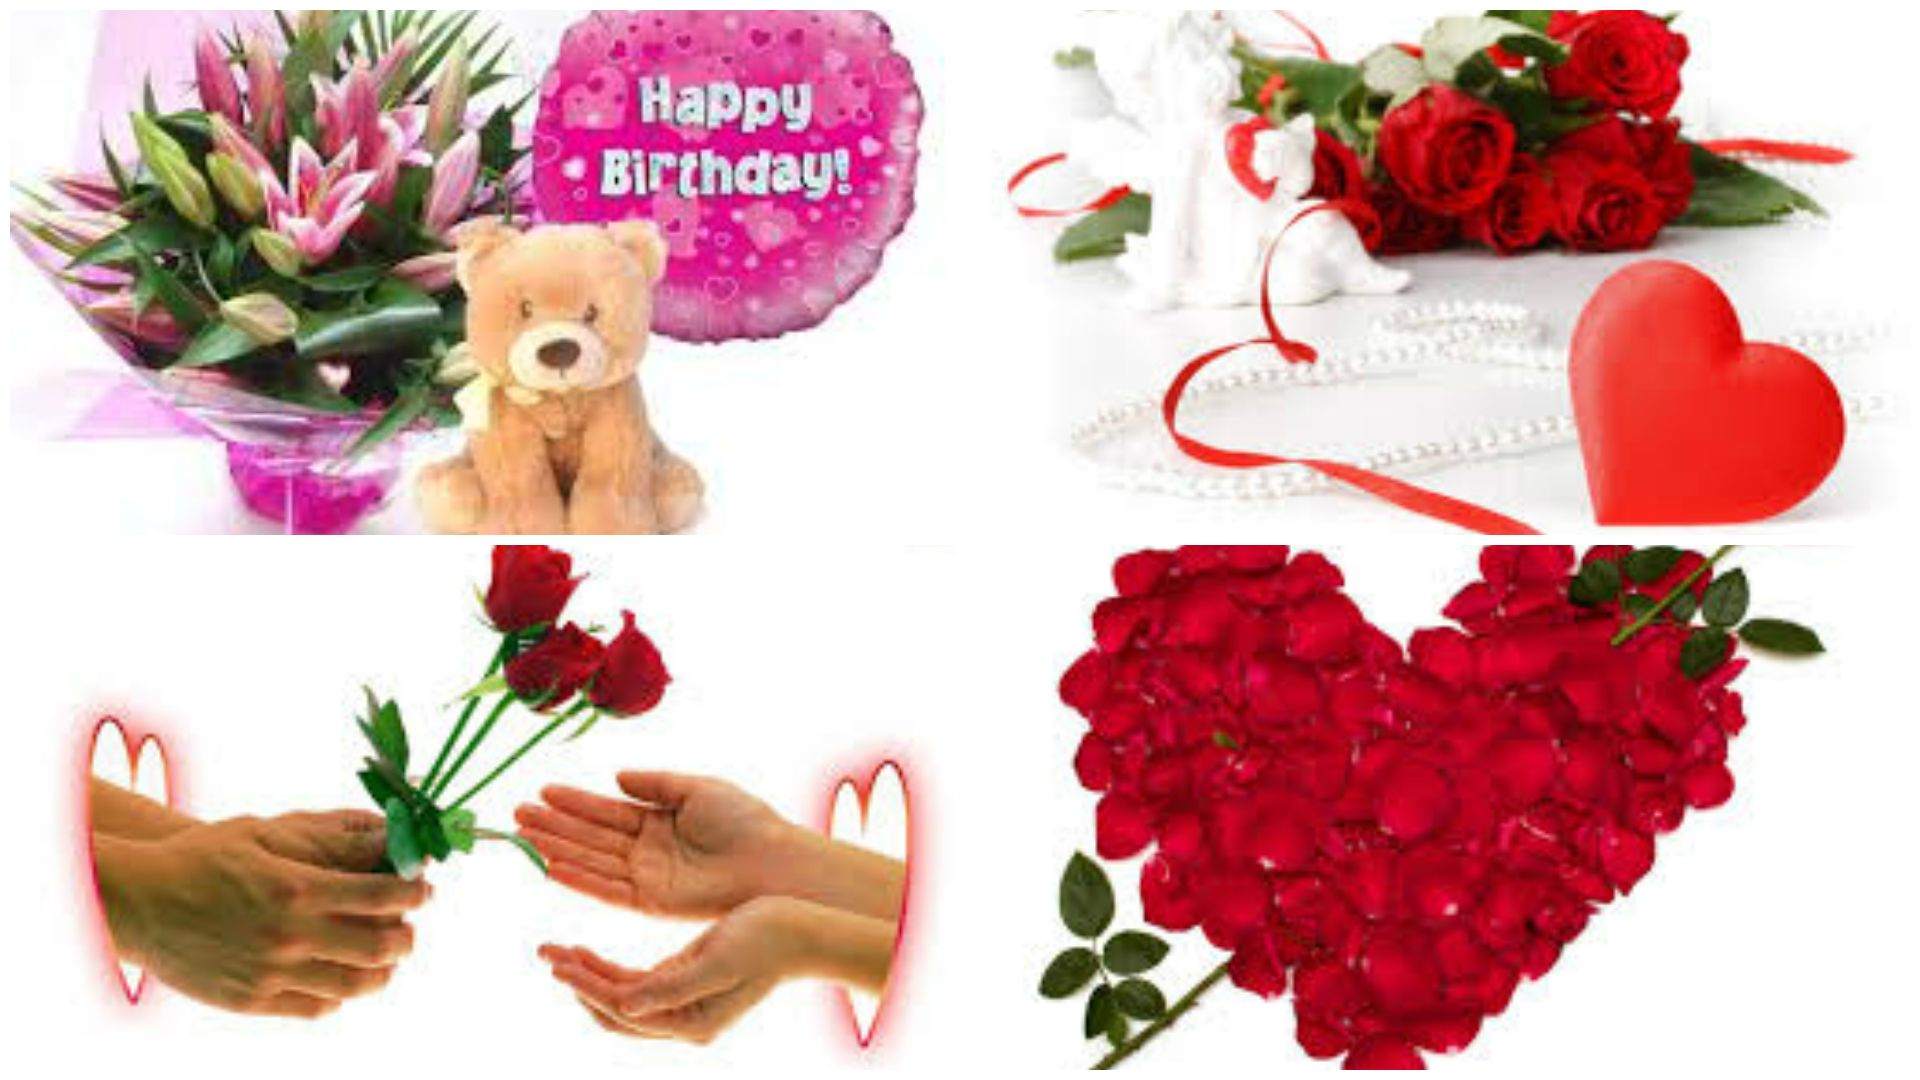 Filipinas gifts flowers delivery in philippines filipinas gifts filipinas gifts flowers delivery in philippines filipinas gifts are premier online flowers and gifts shopping site in the philippines which offers their izmirmasajfo